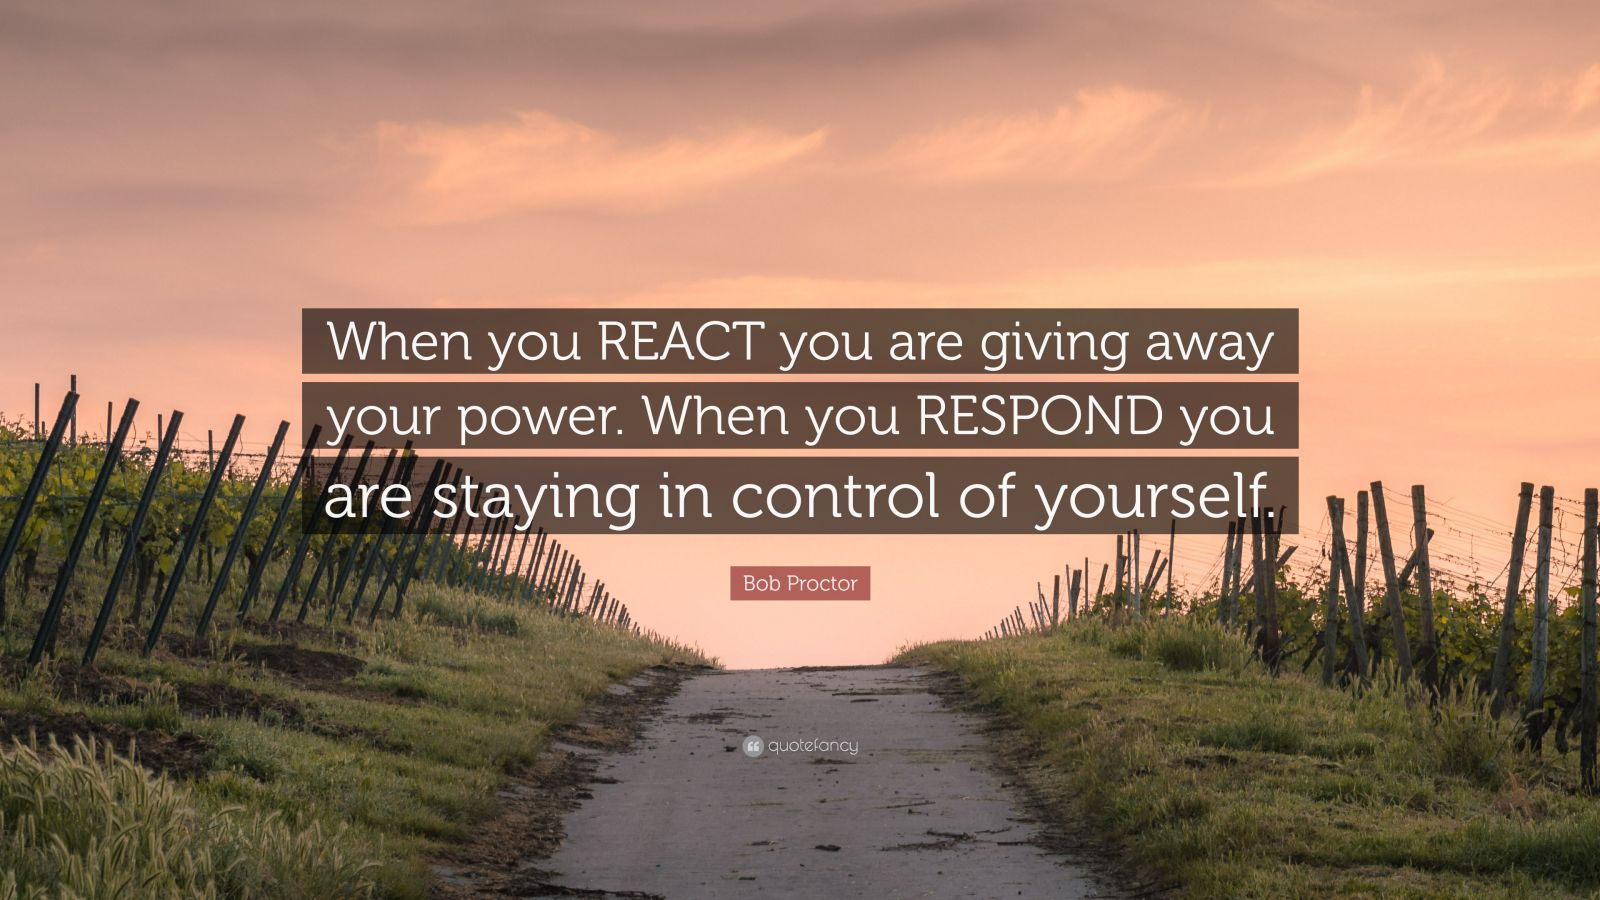 2338581-Bob-Proctor-Quote-When-you-REACT-you-are-giving-away-your-power